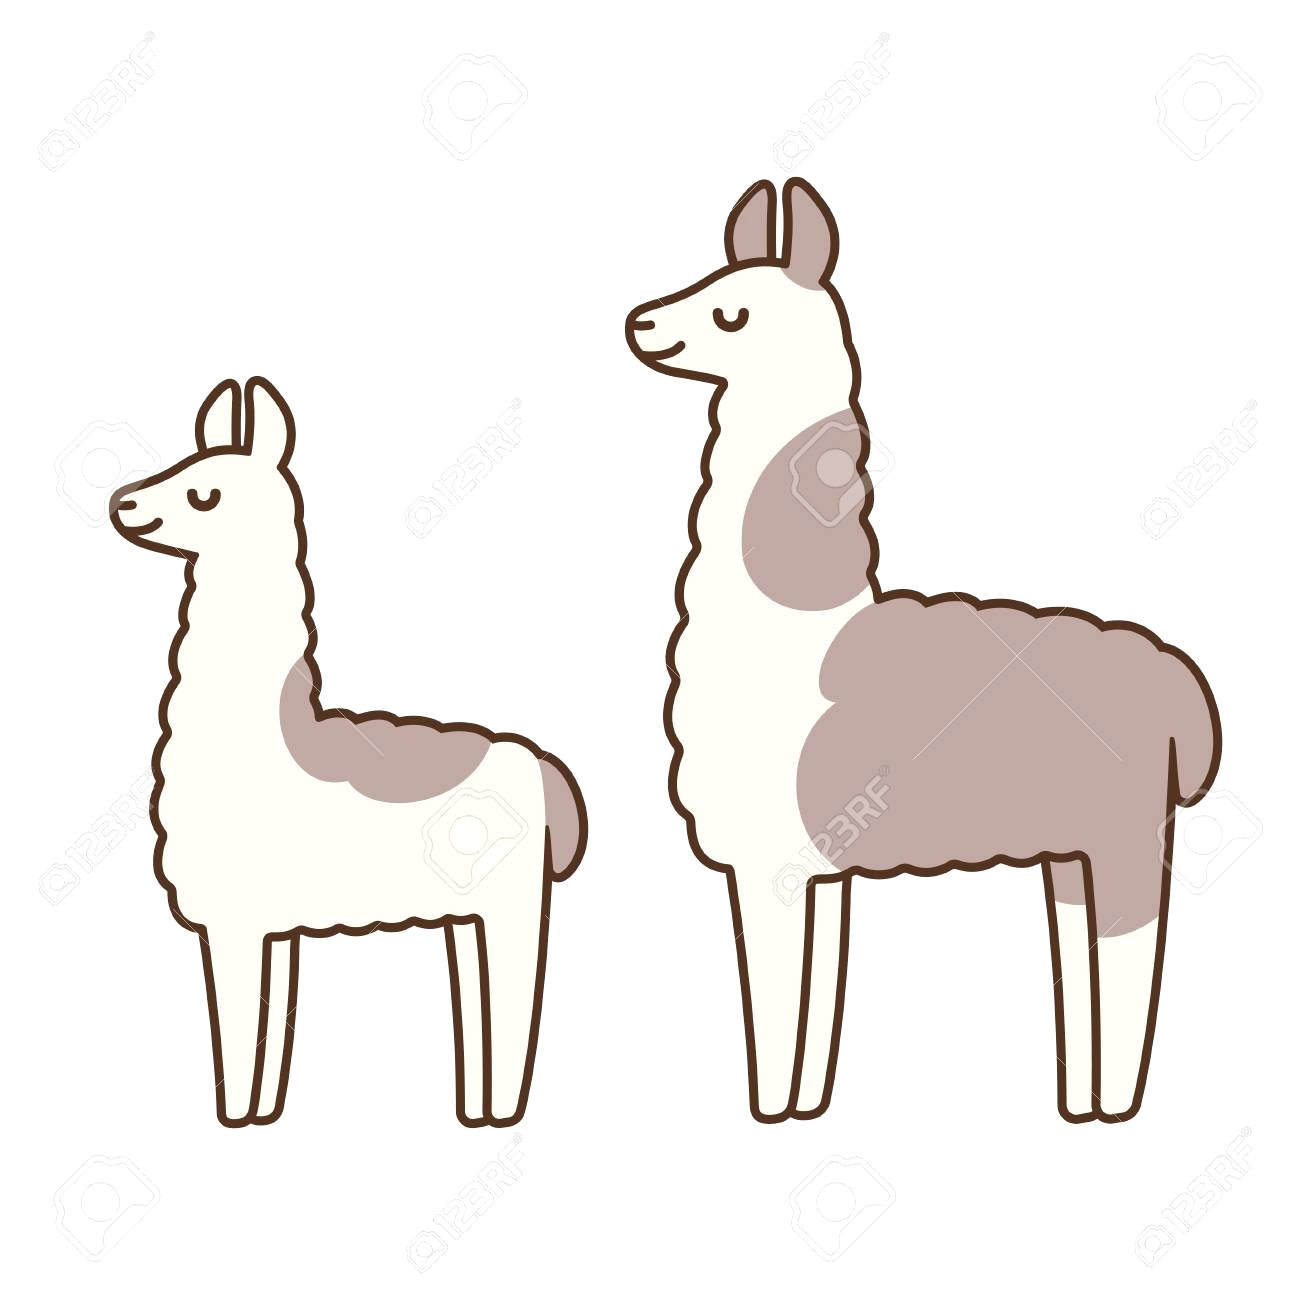 1300x1300 Cute And Simple Llamas Drawing Adult Baby Llama Funny